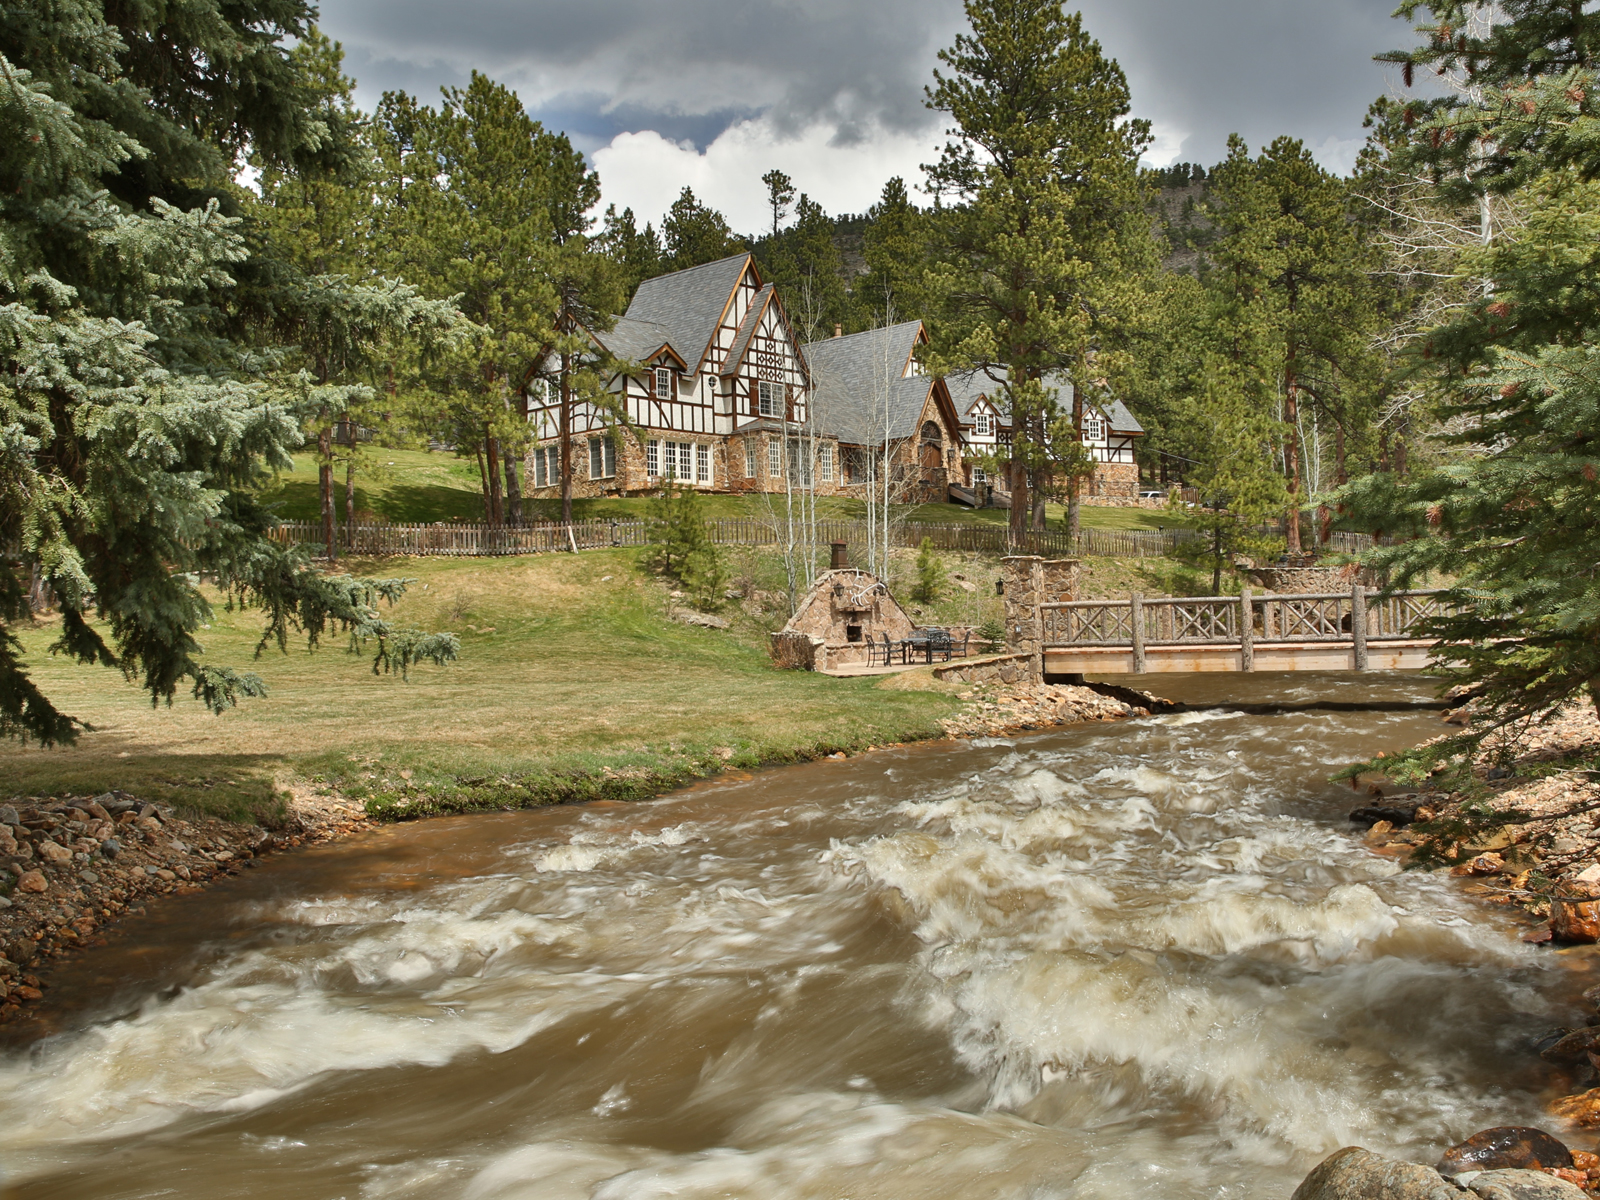 Maison unifamiliale pour l Vente à 34123 Upper Bear Creek Road Evergreen, Colorado 80439 États-Unis